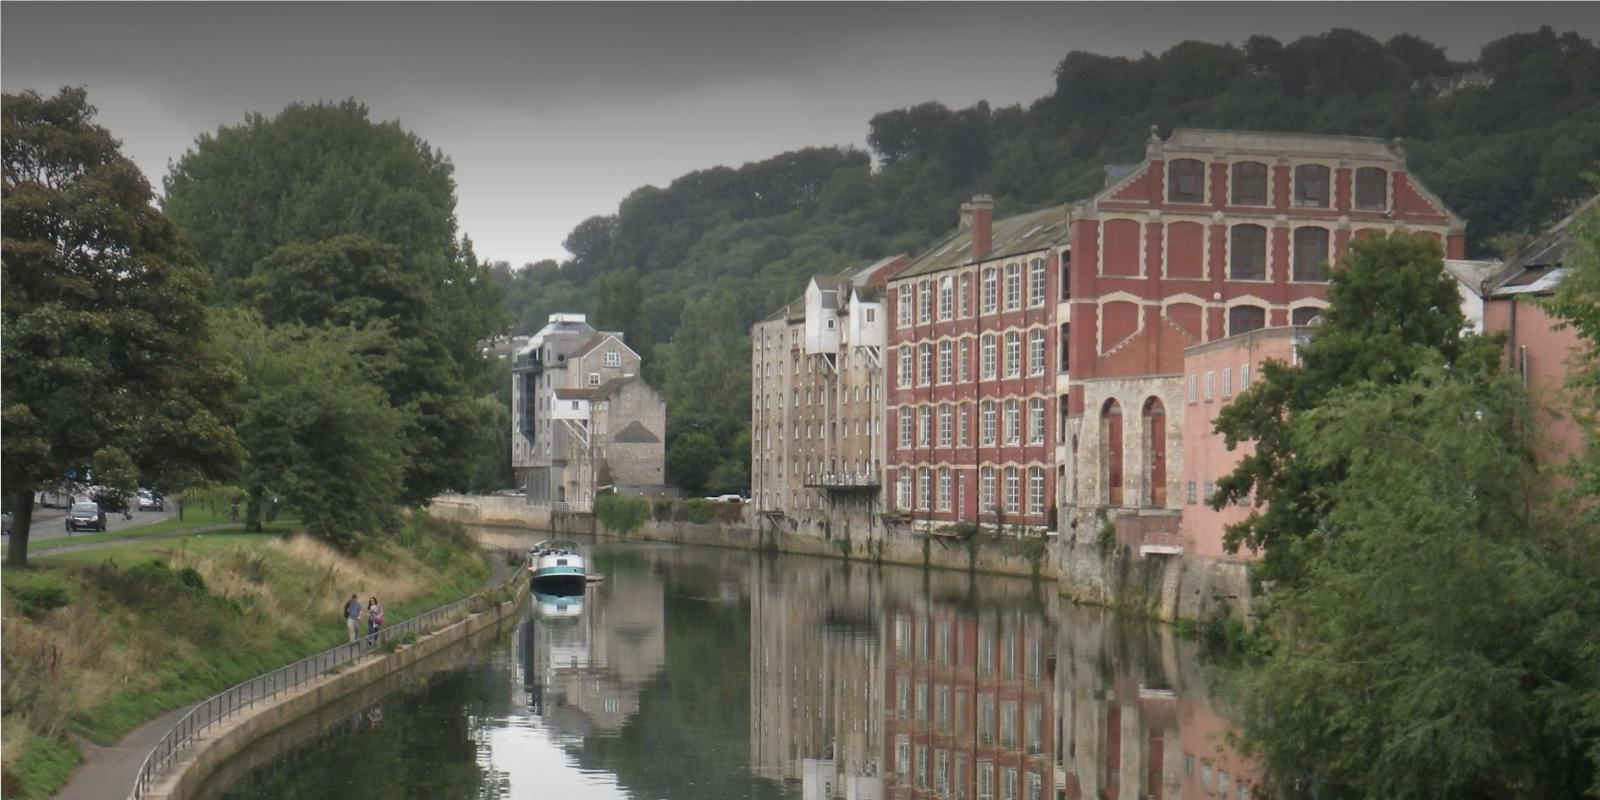 Historic buildings next to a canal